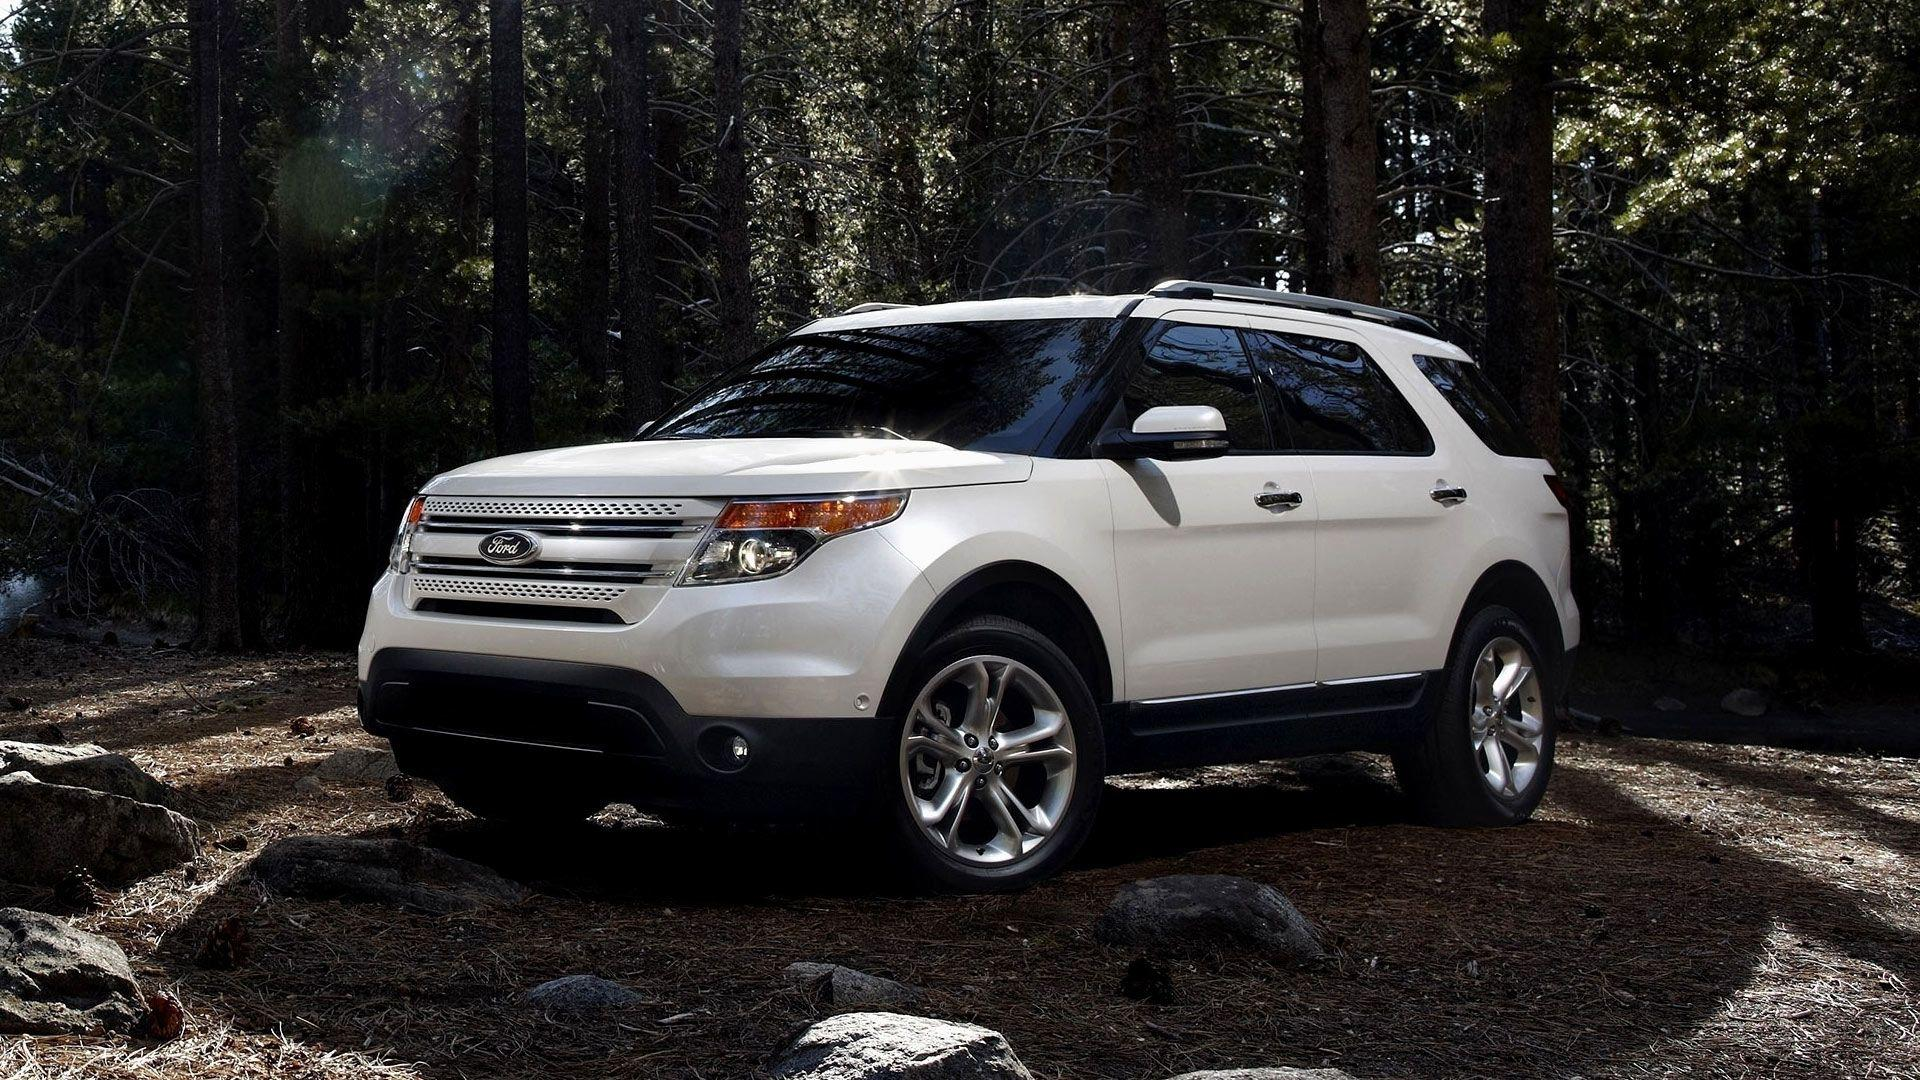 White Ford Explorer Wallpapers Full HD Wallpapers